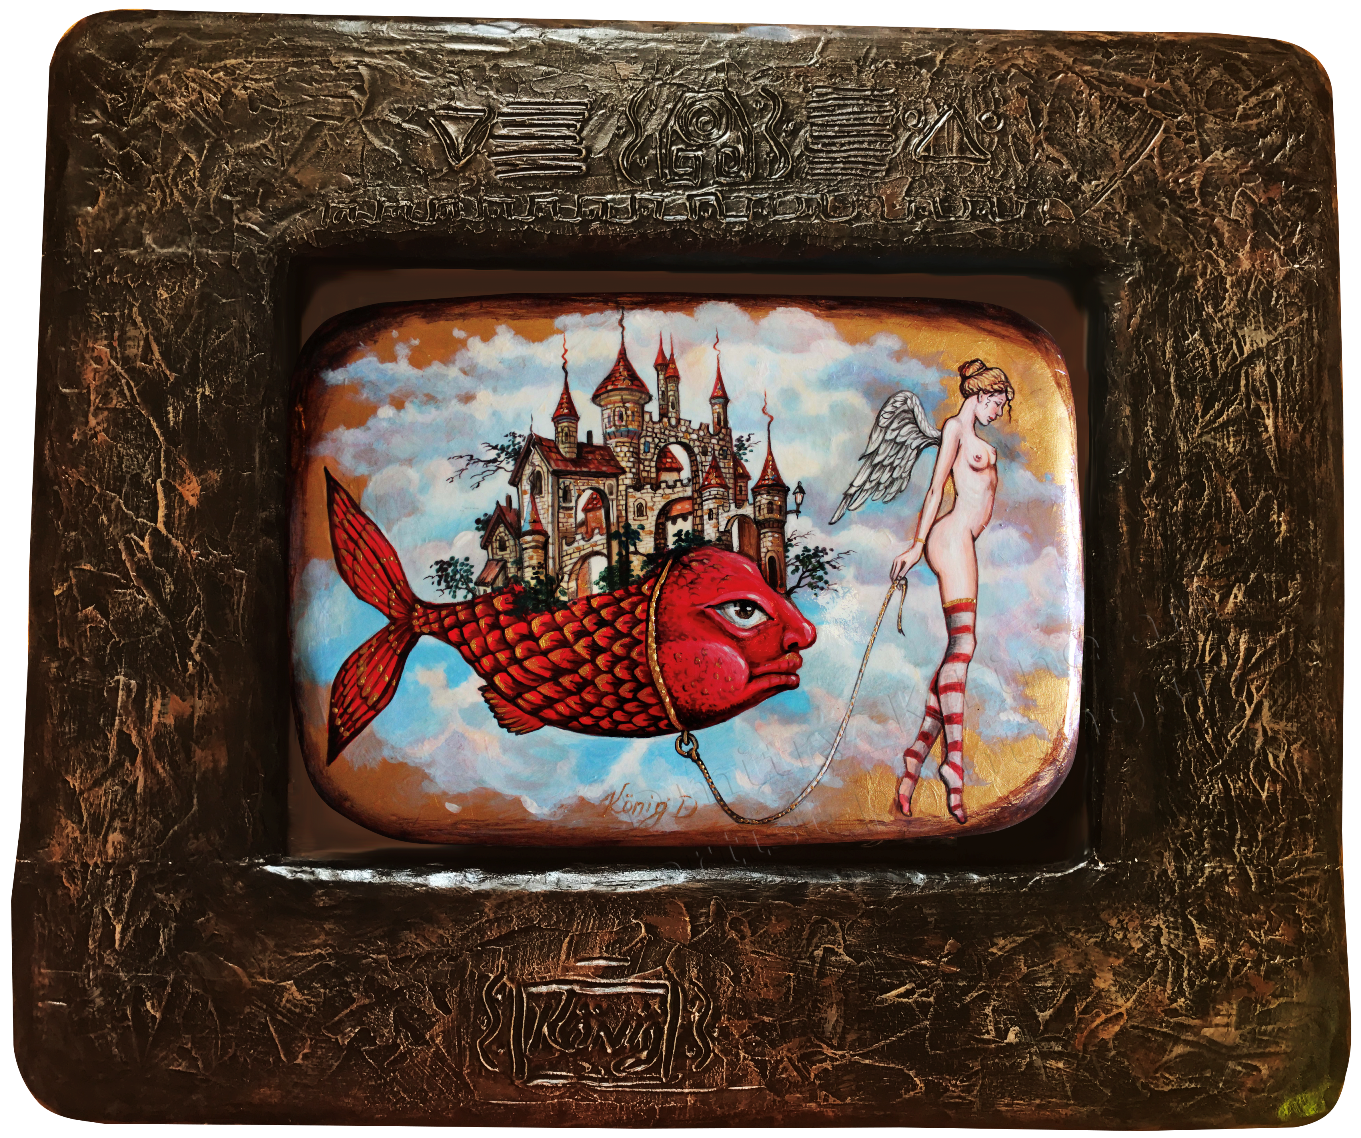 Imagination, magic and inspiration in the original Wood Art Panel